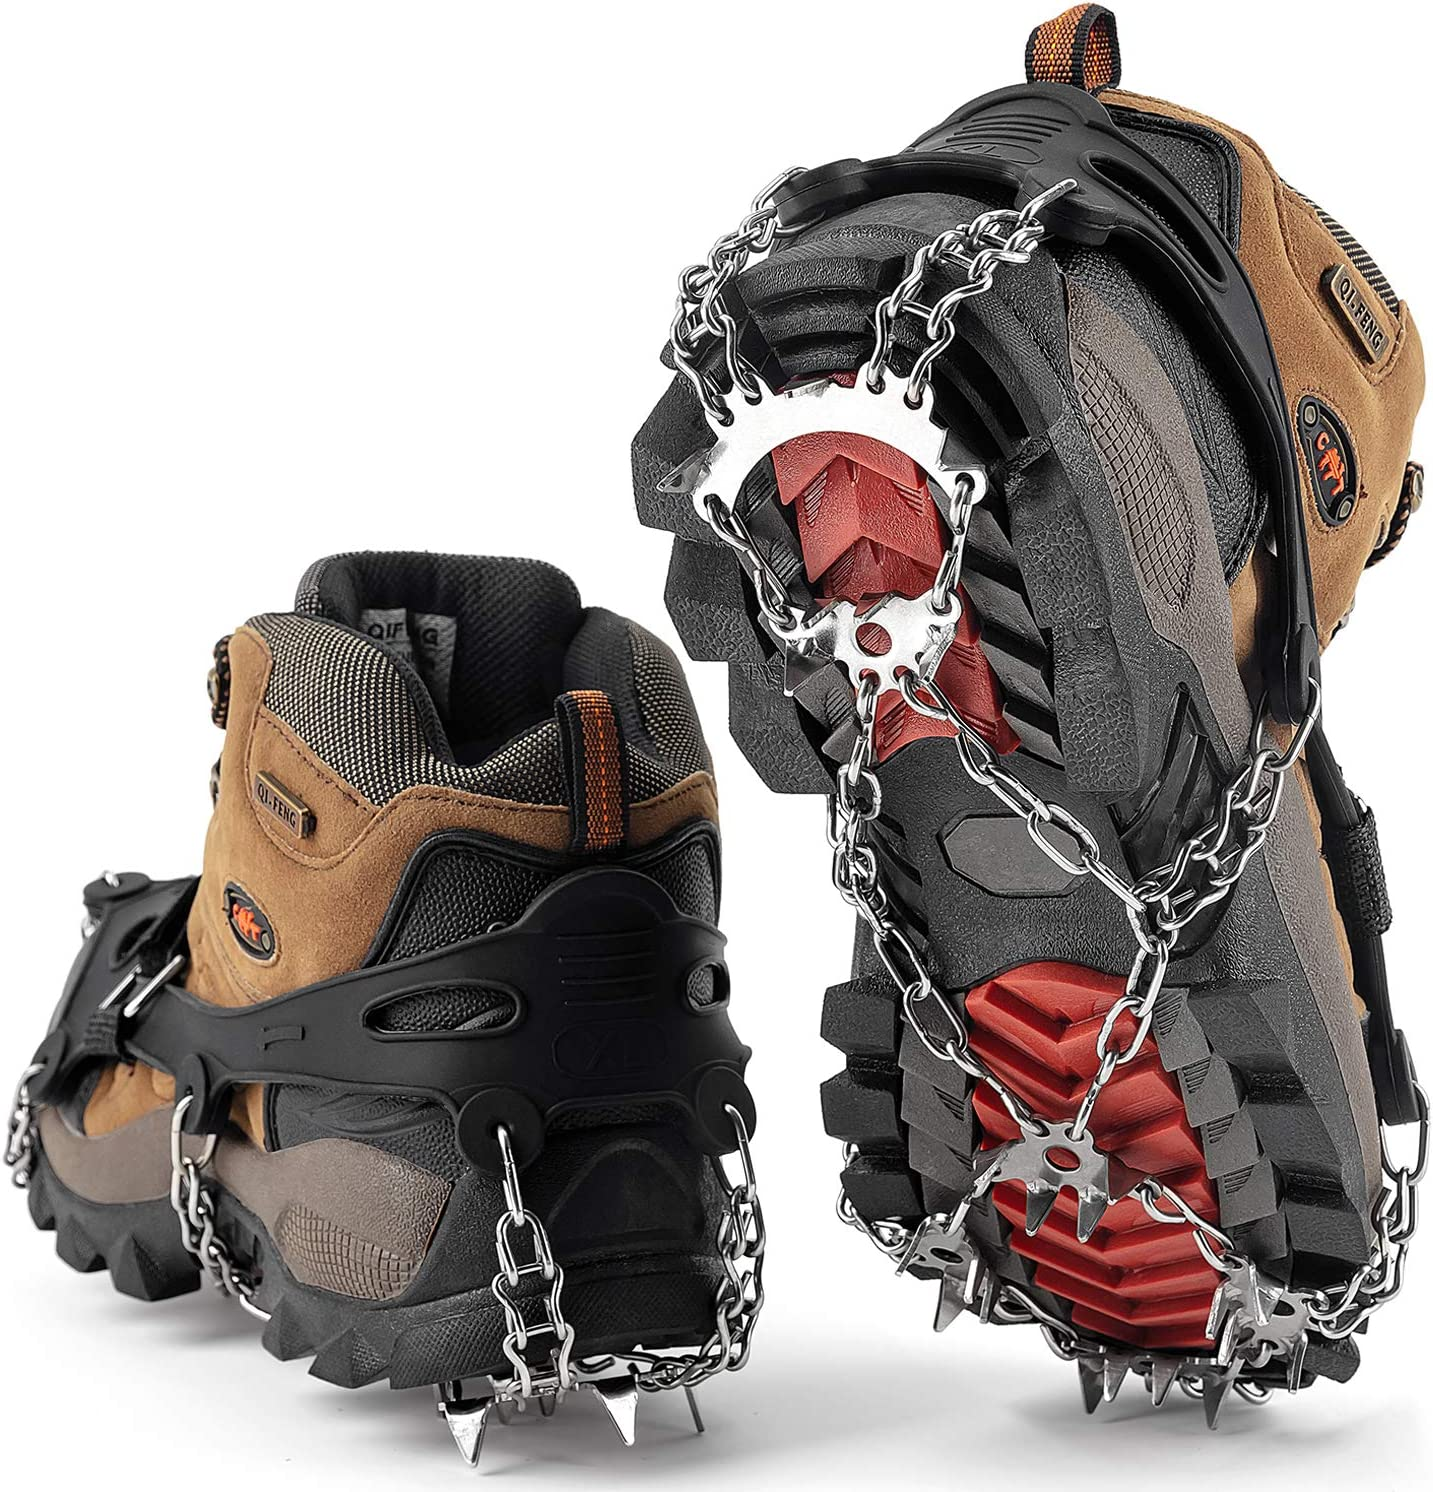 Black, M Hiking Wirezoll Ice Cleats Stainless Steel Traction Cleats Jogging Mountaineering Ice Snow Grips Portable Walk Spikes Crampons for Walking